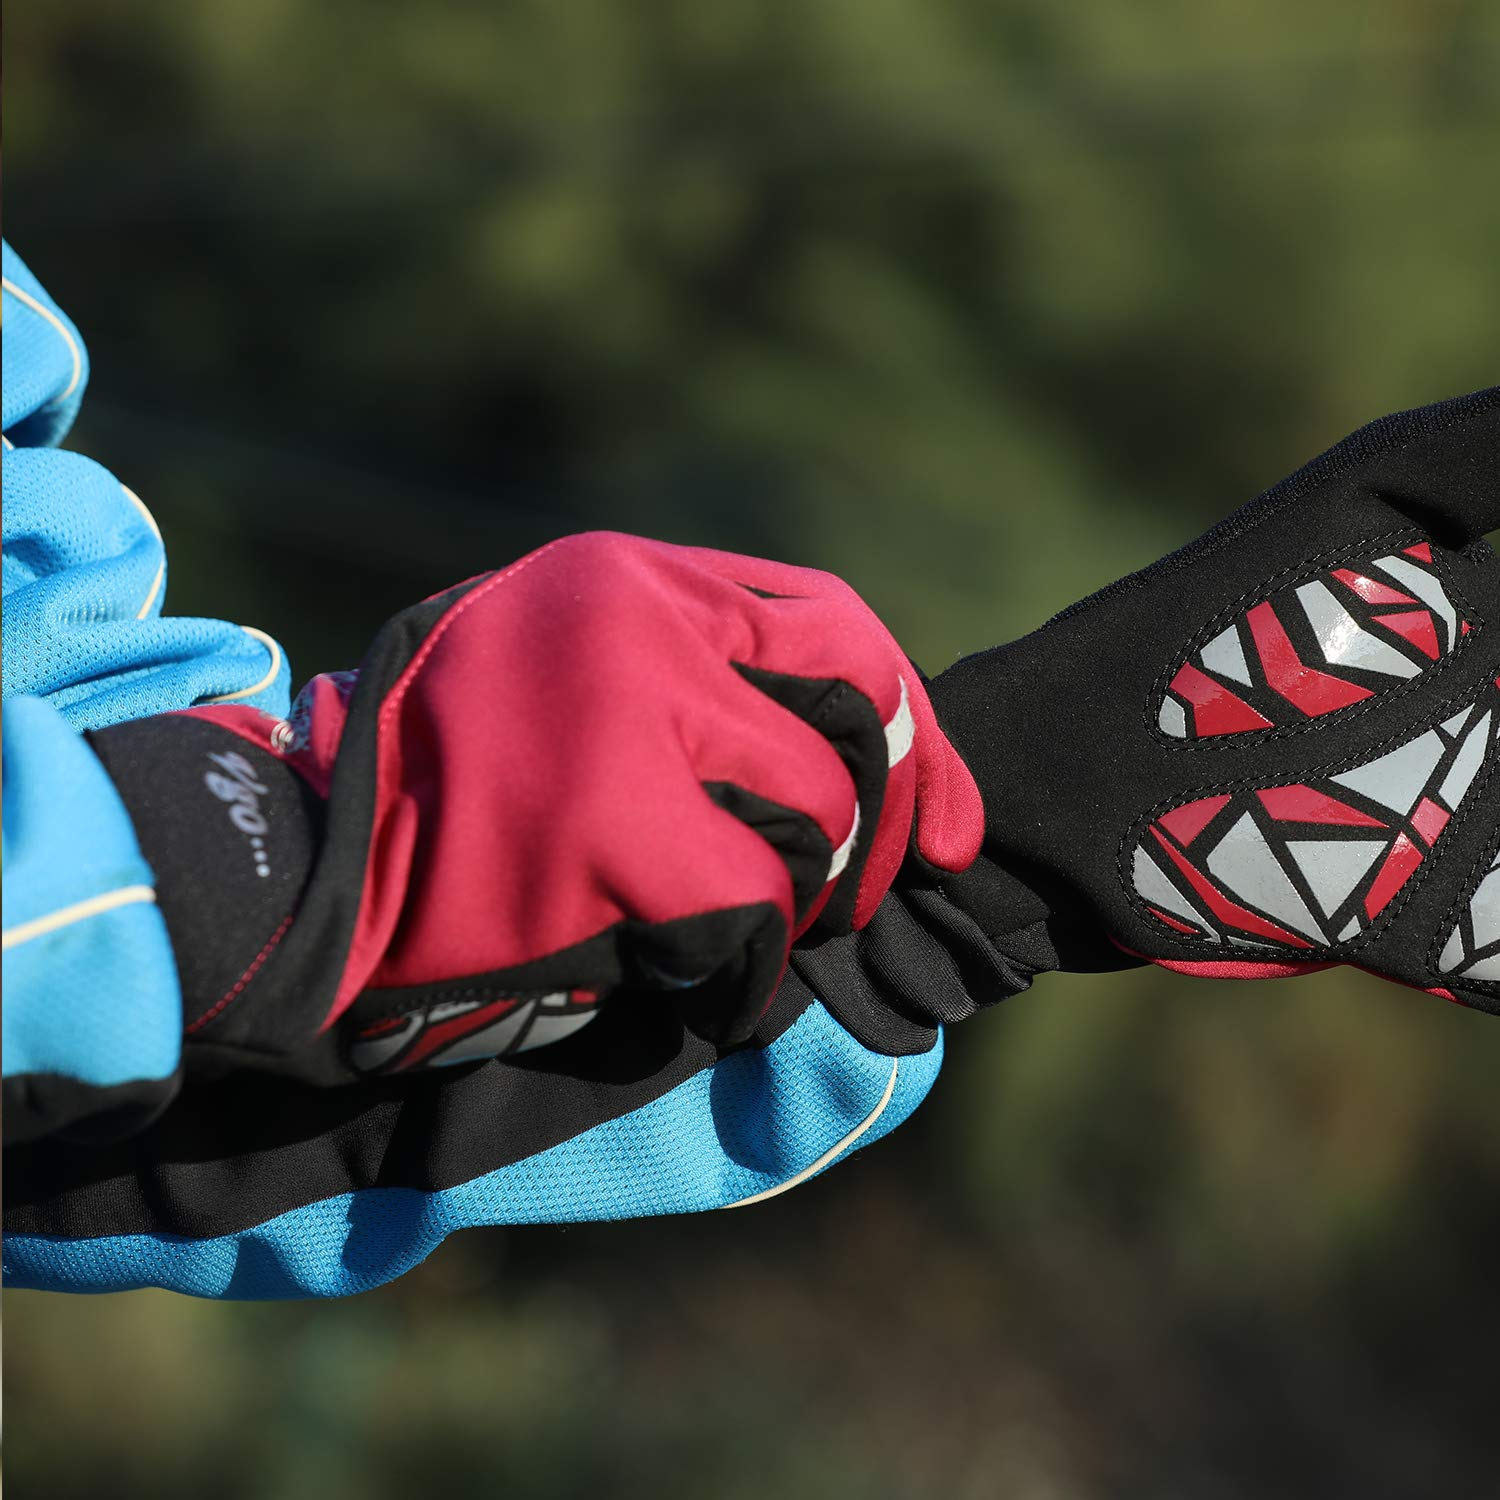 Outdoor Sports Gloves Vgo.. Riding Gloves Ladies Bicycle Gloves,Touch Recognition Full Finger Bike Gloves 1Pair,Size M,Red,SL75147 Laborsing Safety Products Inc.